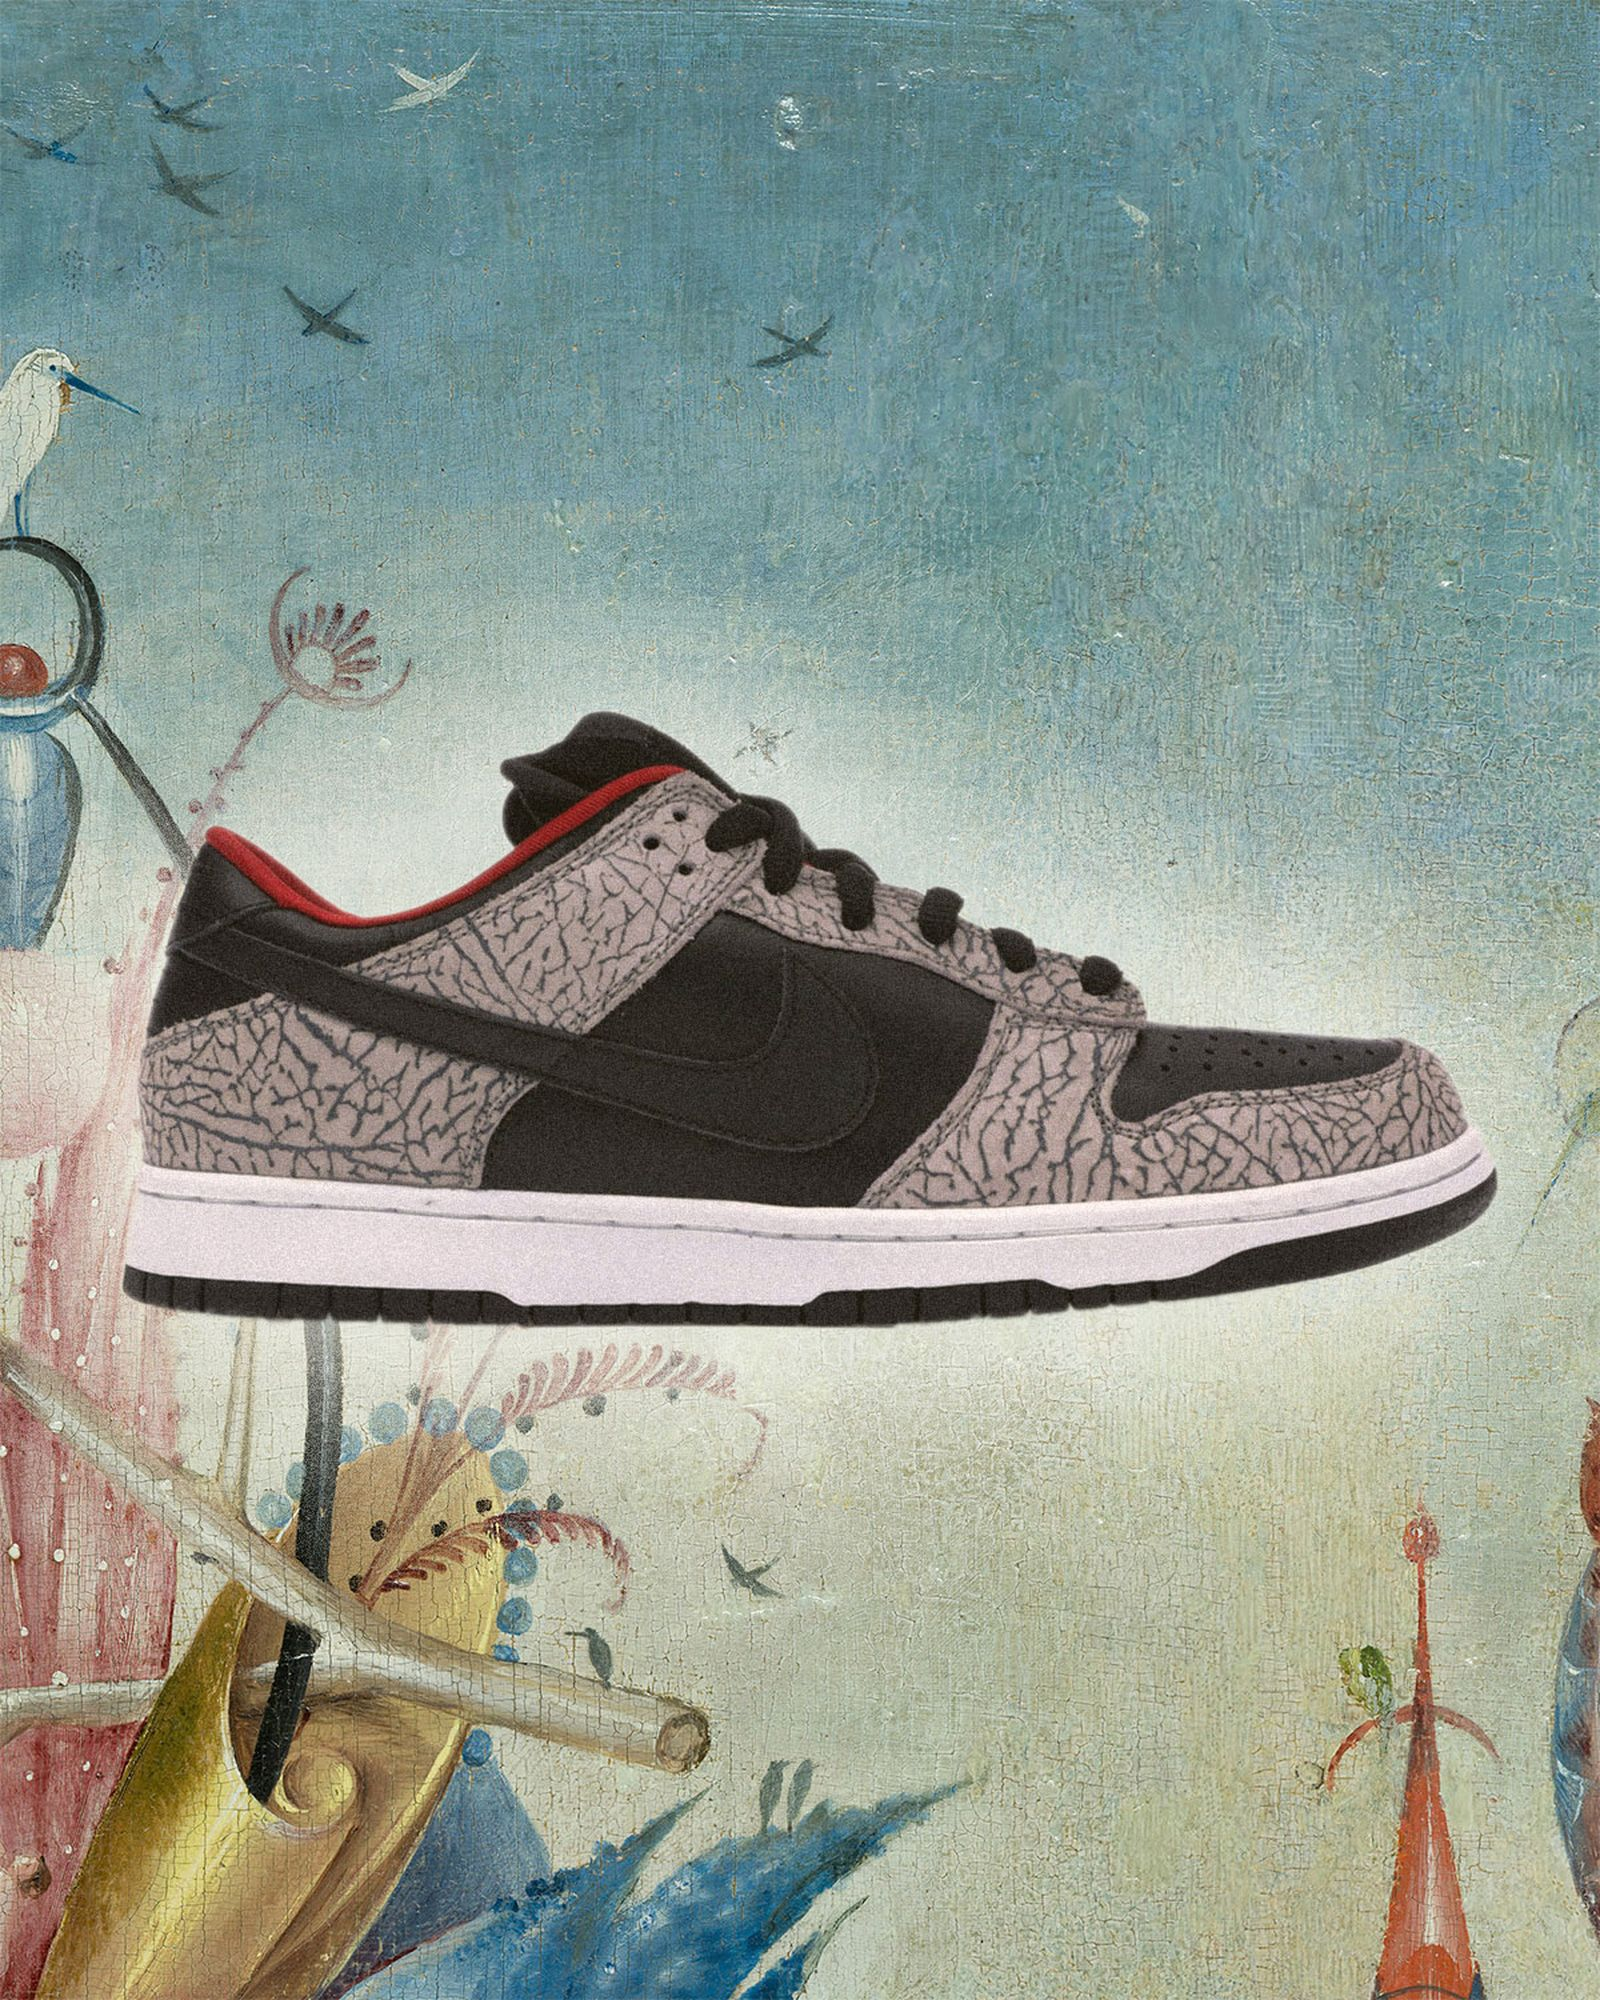 03-Nike-SB-Dunk Low-Supreme-Black-Cement